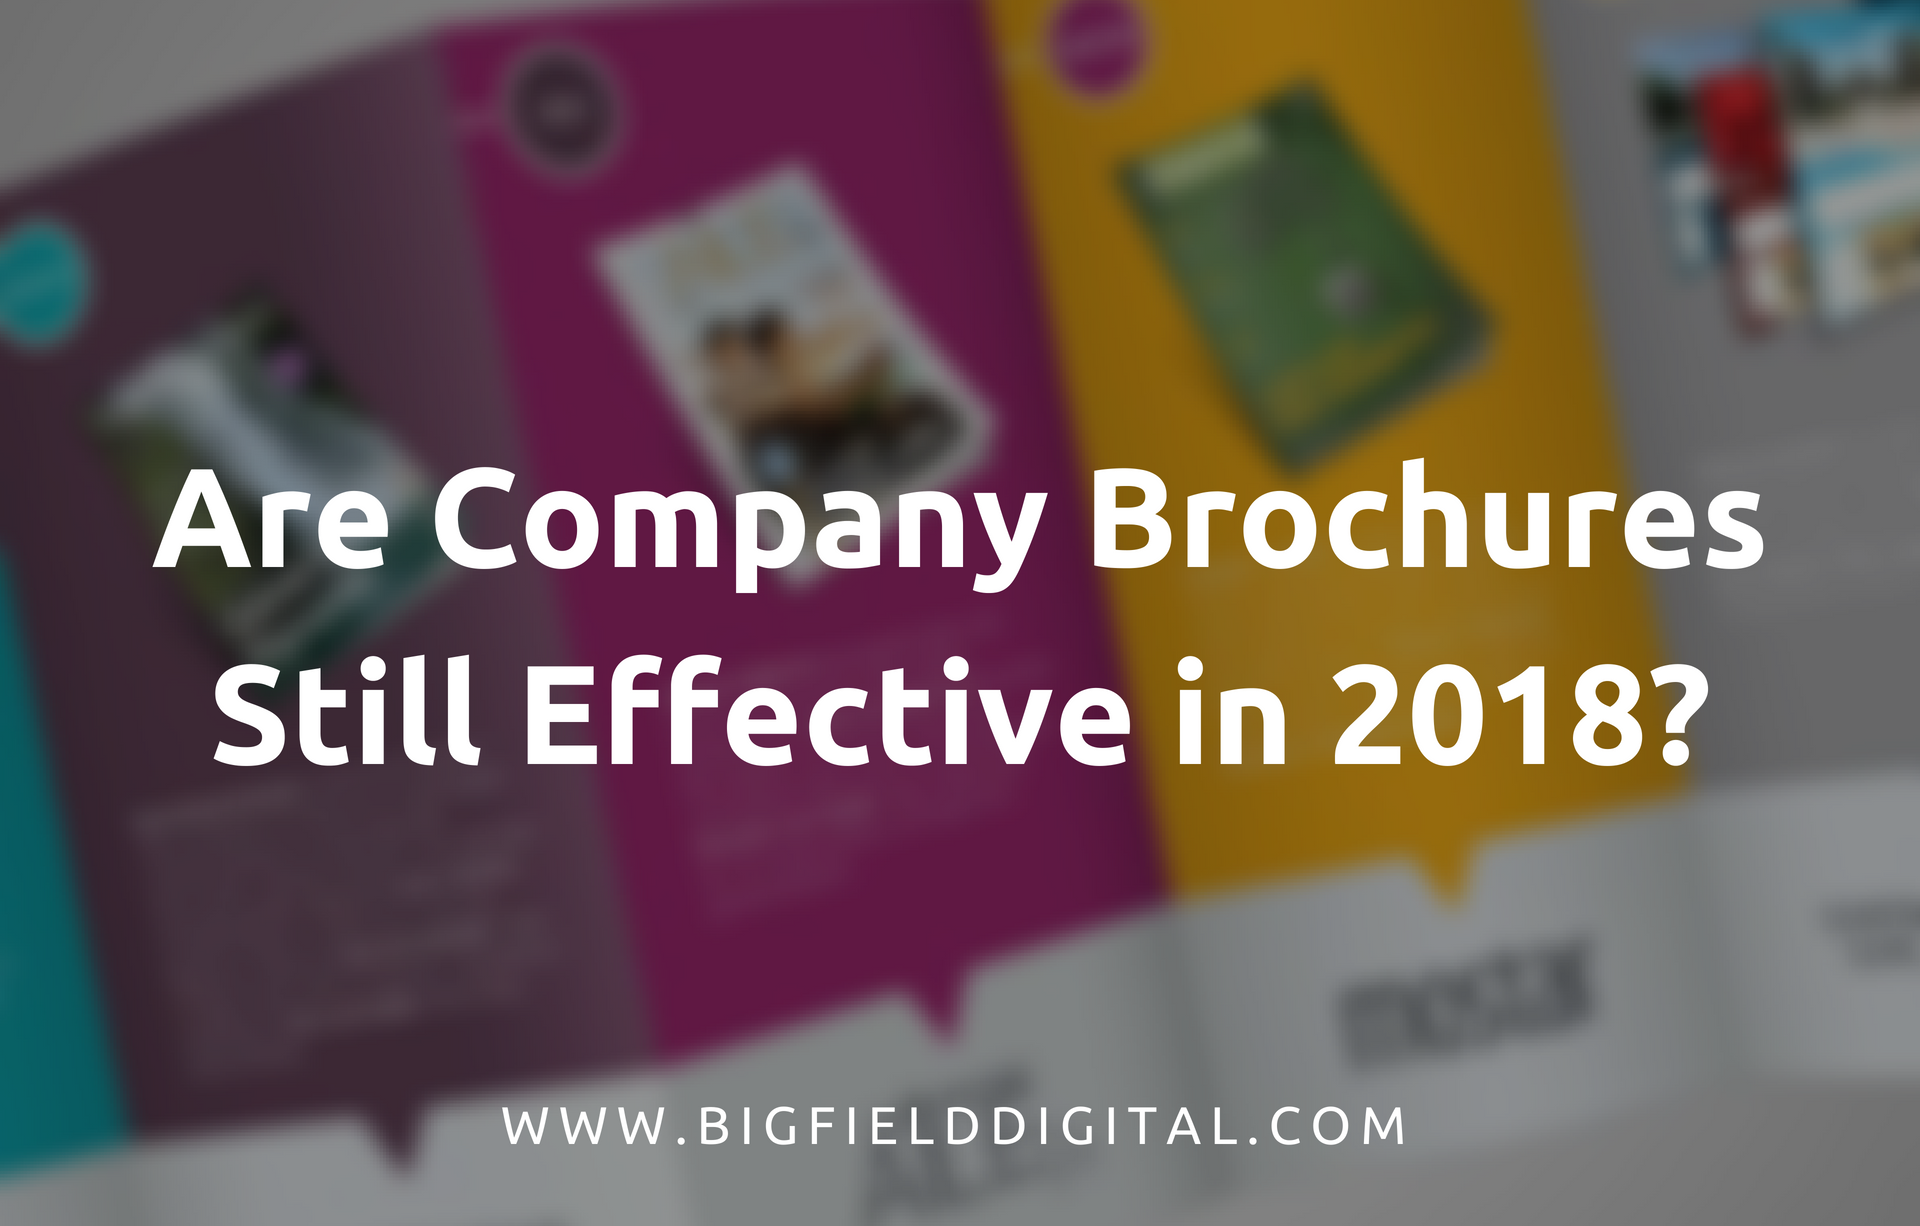 Are Company Brochures Still Effective in 2018?